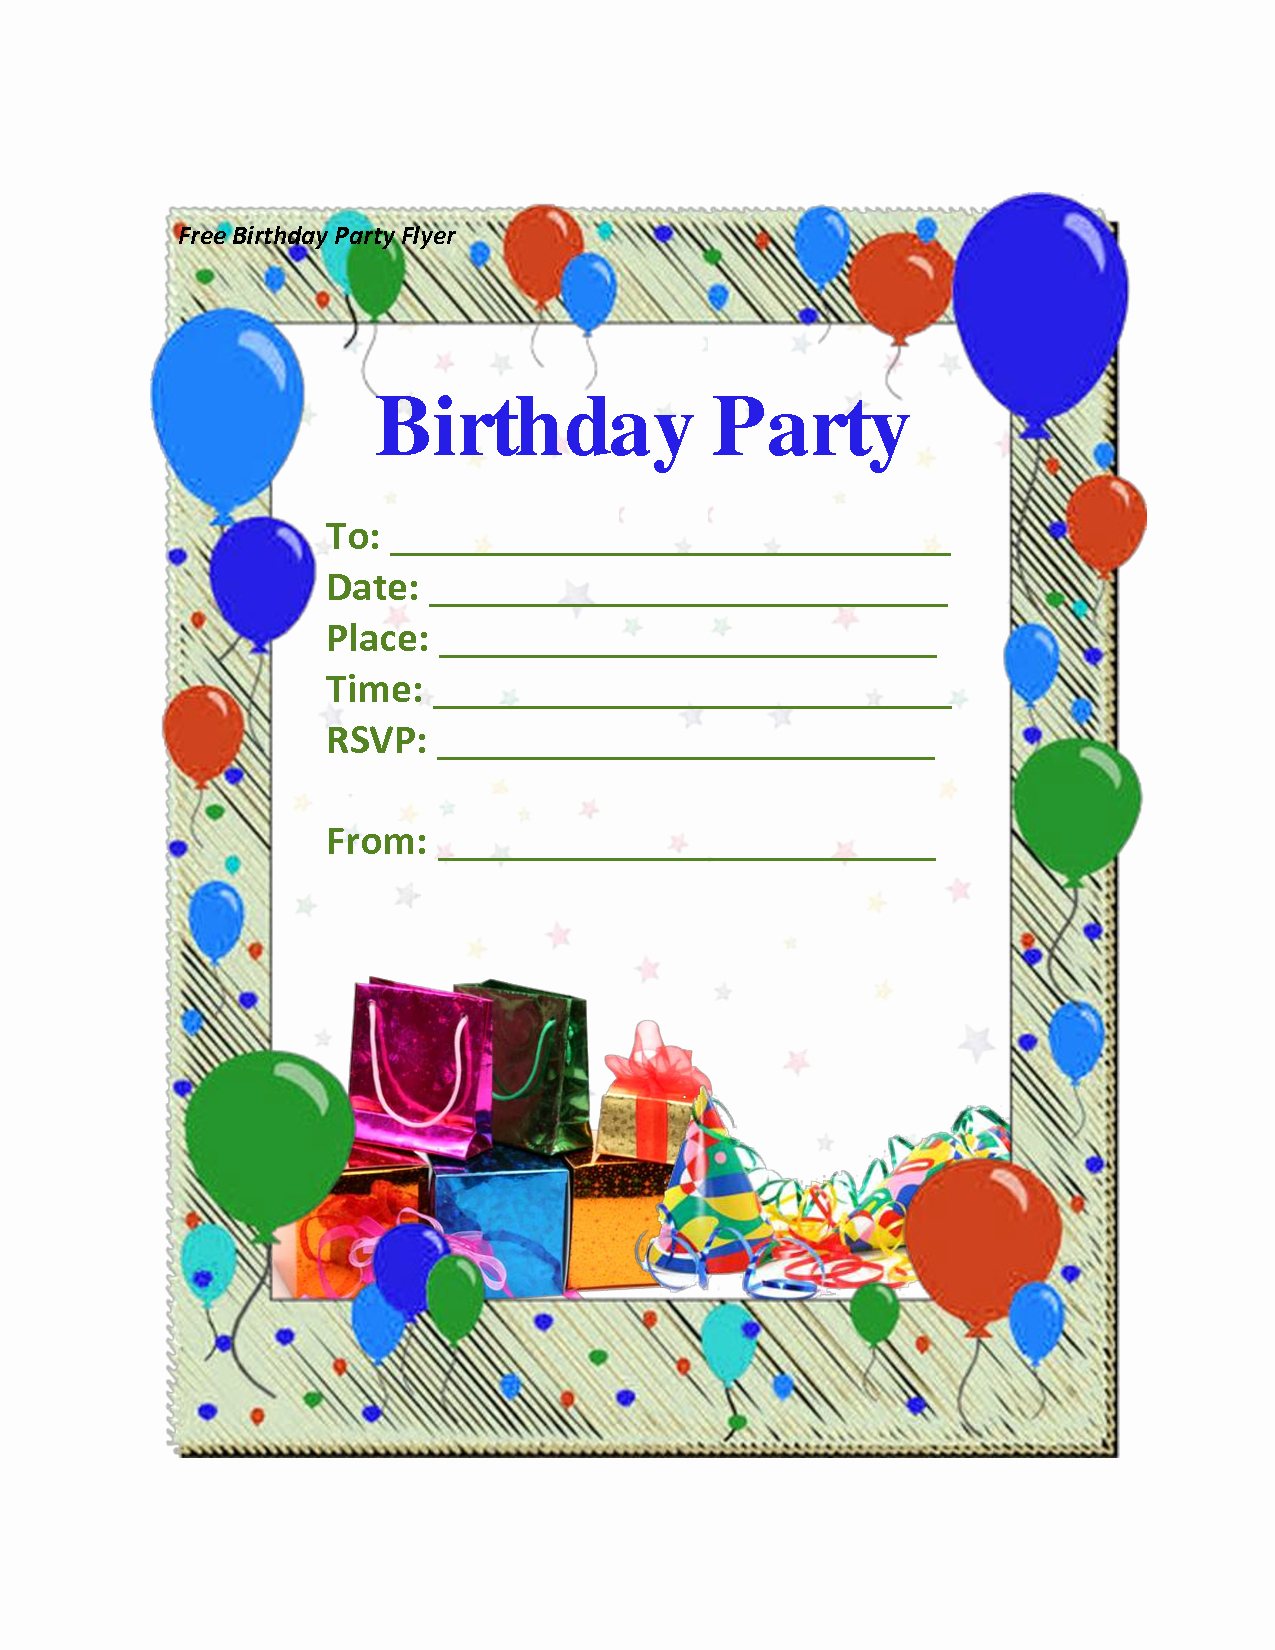 Microsoft Word Template for Invitations Best Of Microsoft Fice Invitation Templates Free Download